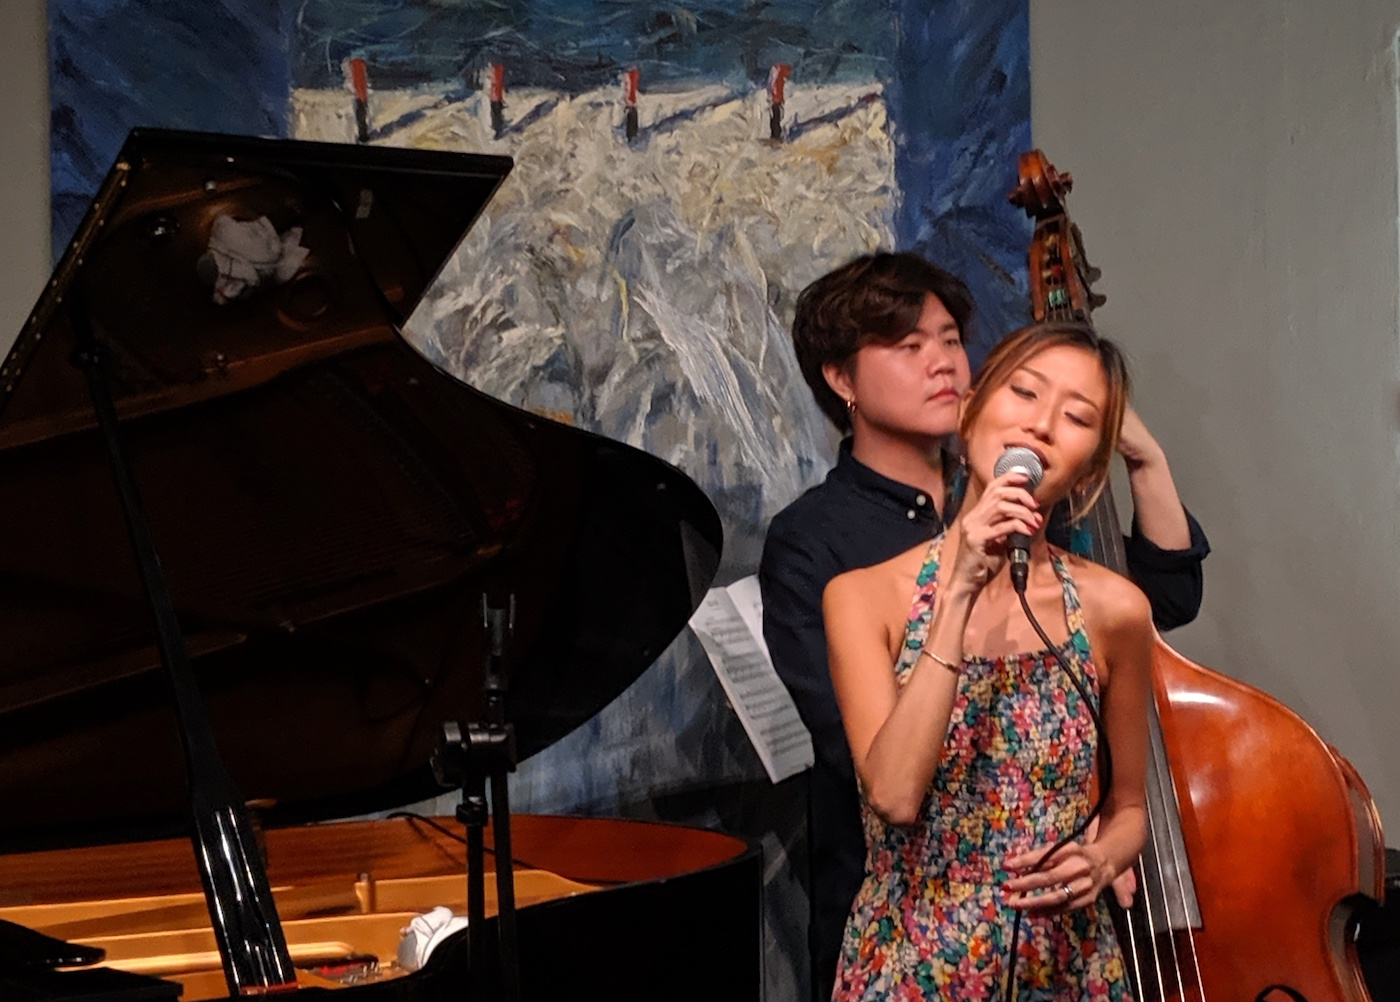 Tiara Friday Club jazz vocalist Melissa Tham and Ben Poon on bass at Maduro listening lounge Dempsey